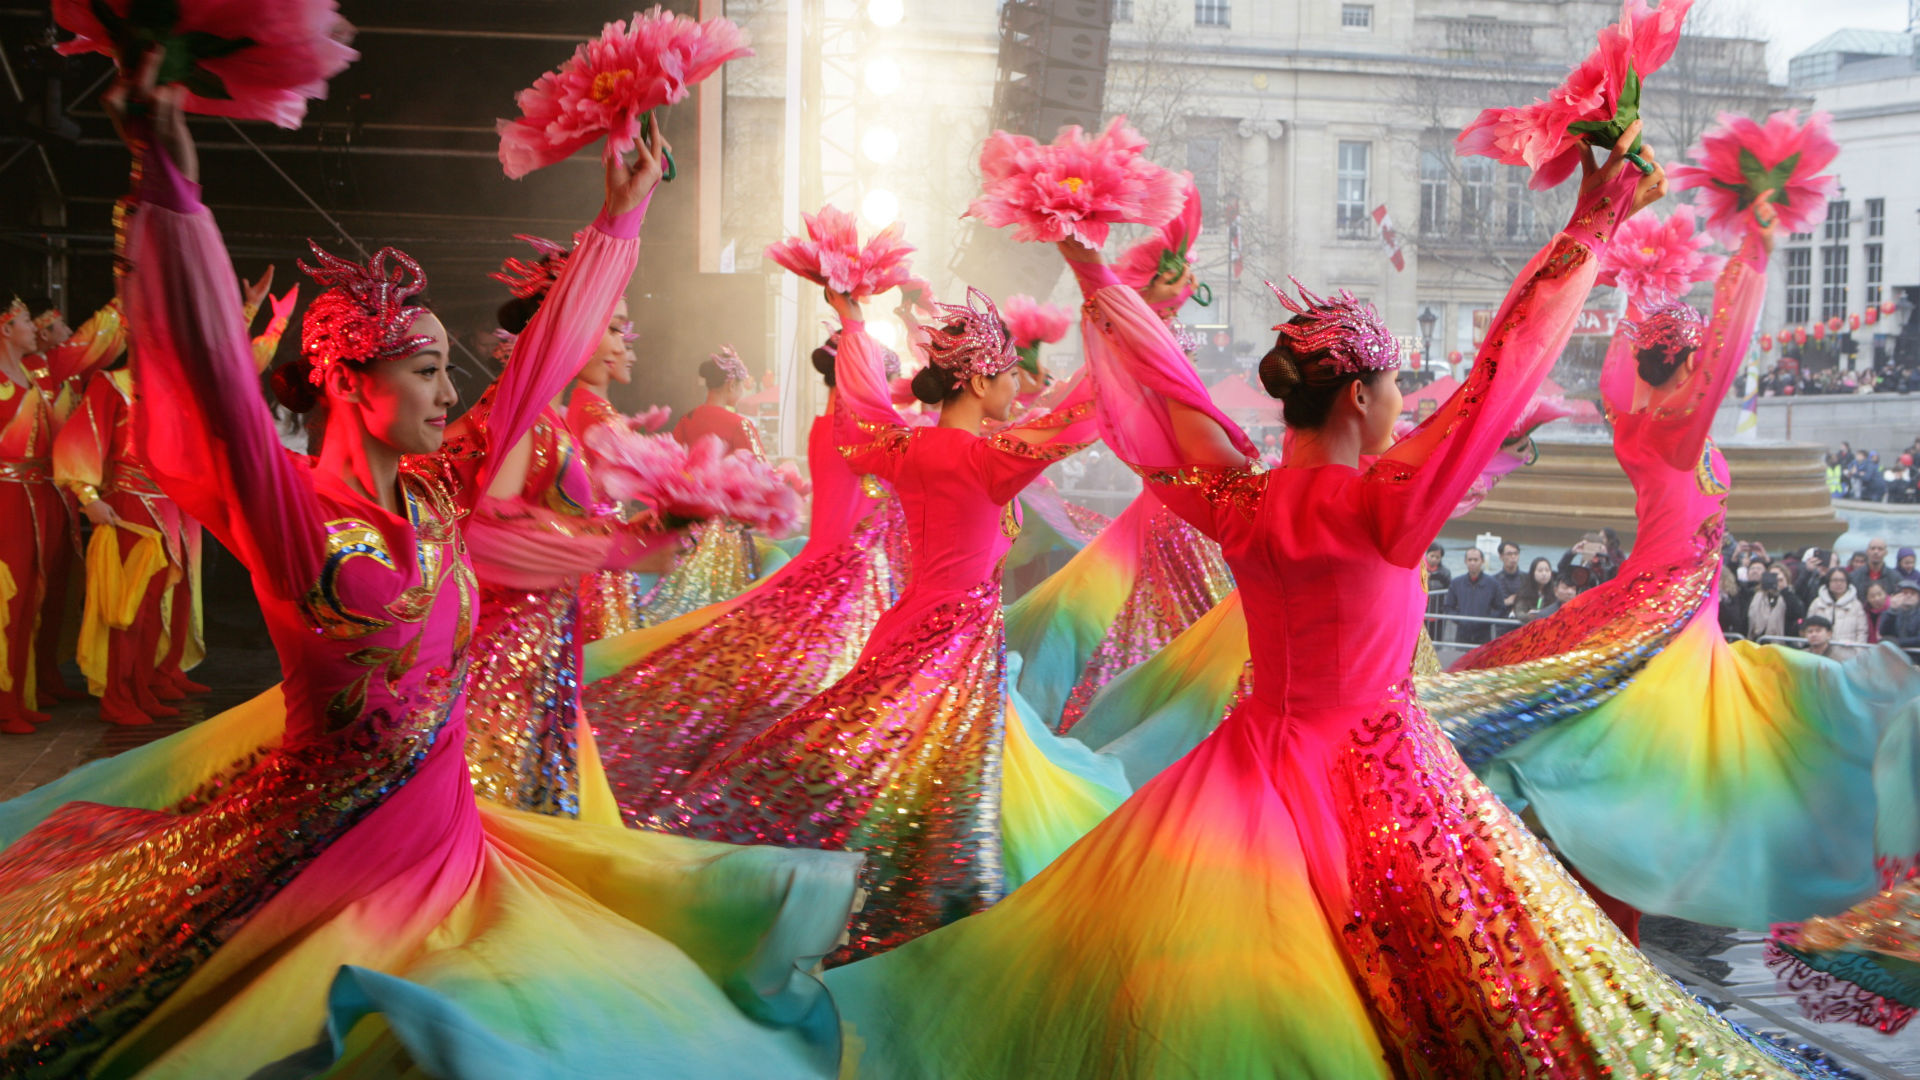 A group of brightly dressed dancers perform on a stage in front of crowds in Trafalgar Square during Chinese New Year in London